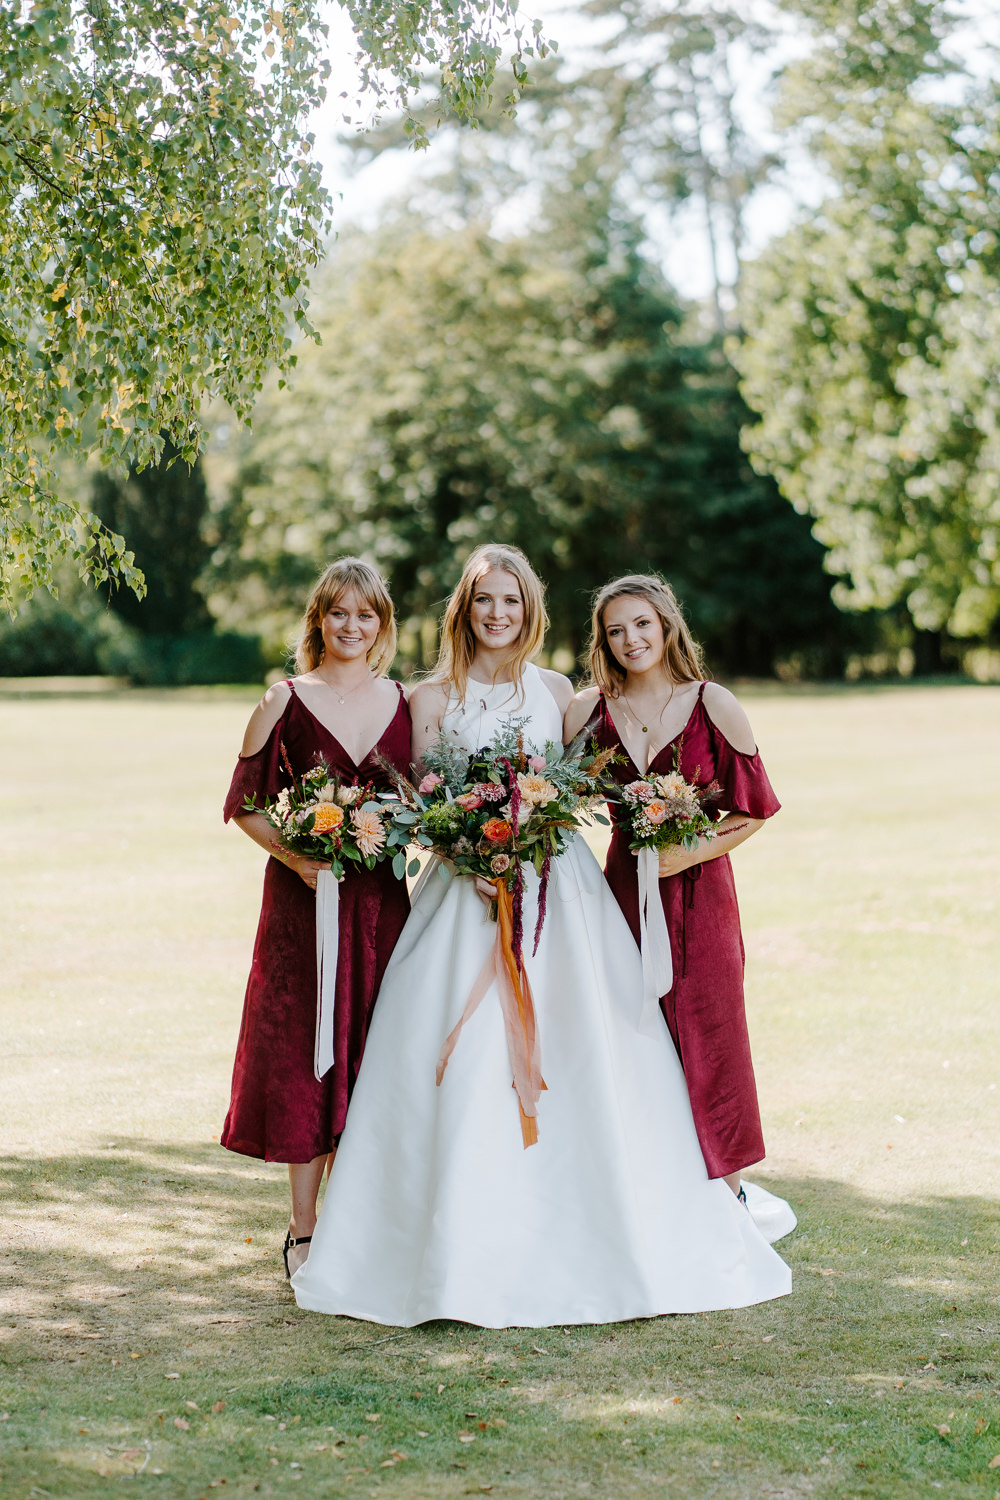 Red Burgundy Bridesmaid Bridesmaids Dress Dresses Contemporary Wedding Ideas Chloe Ely Photography